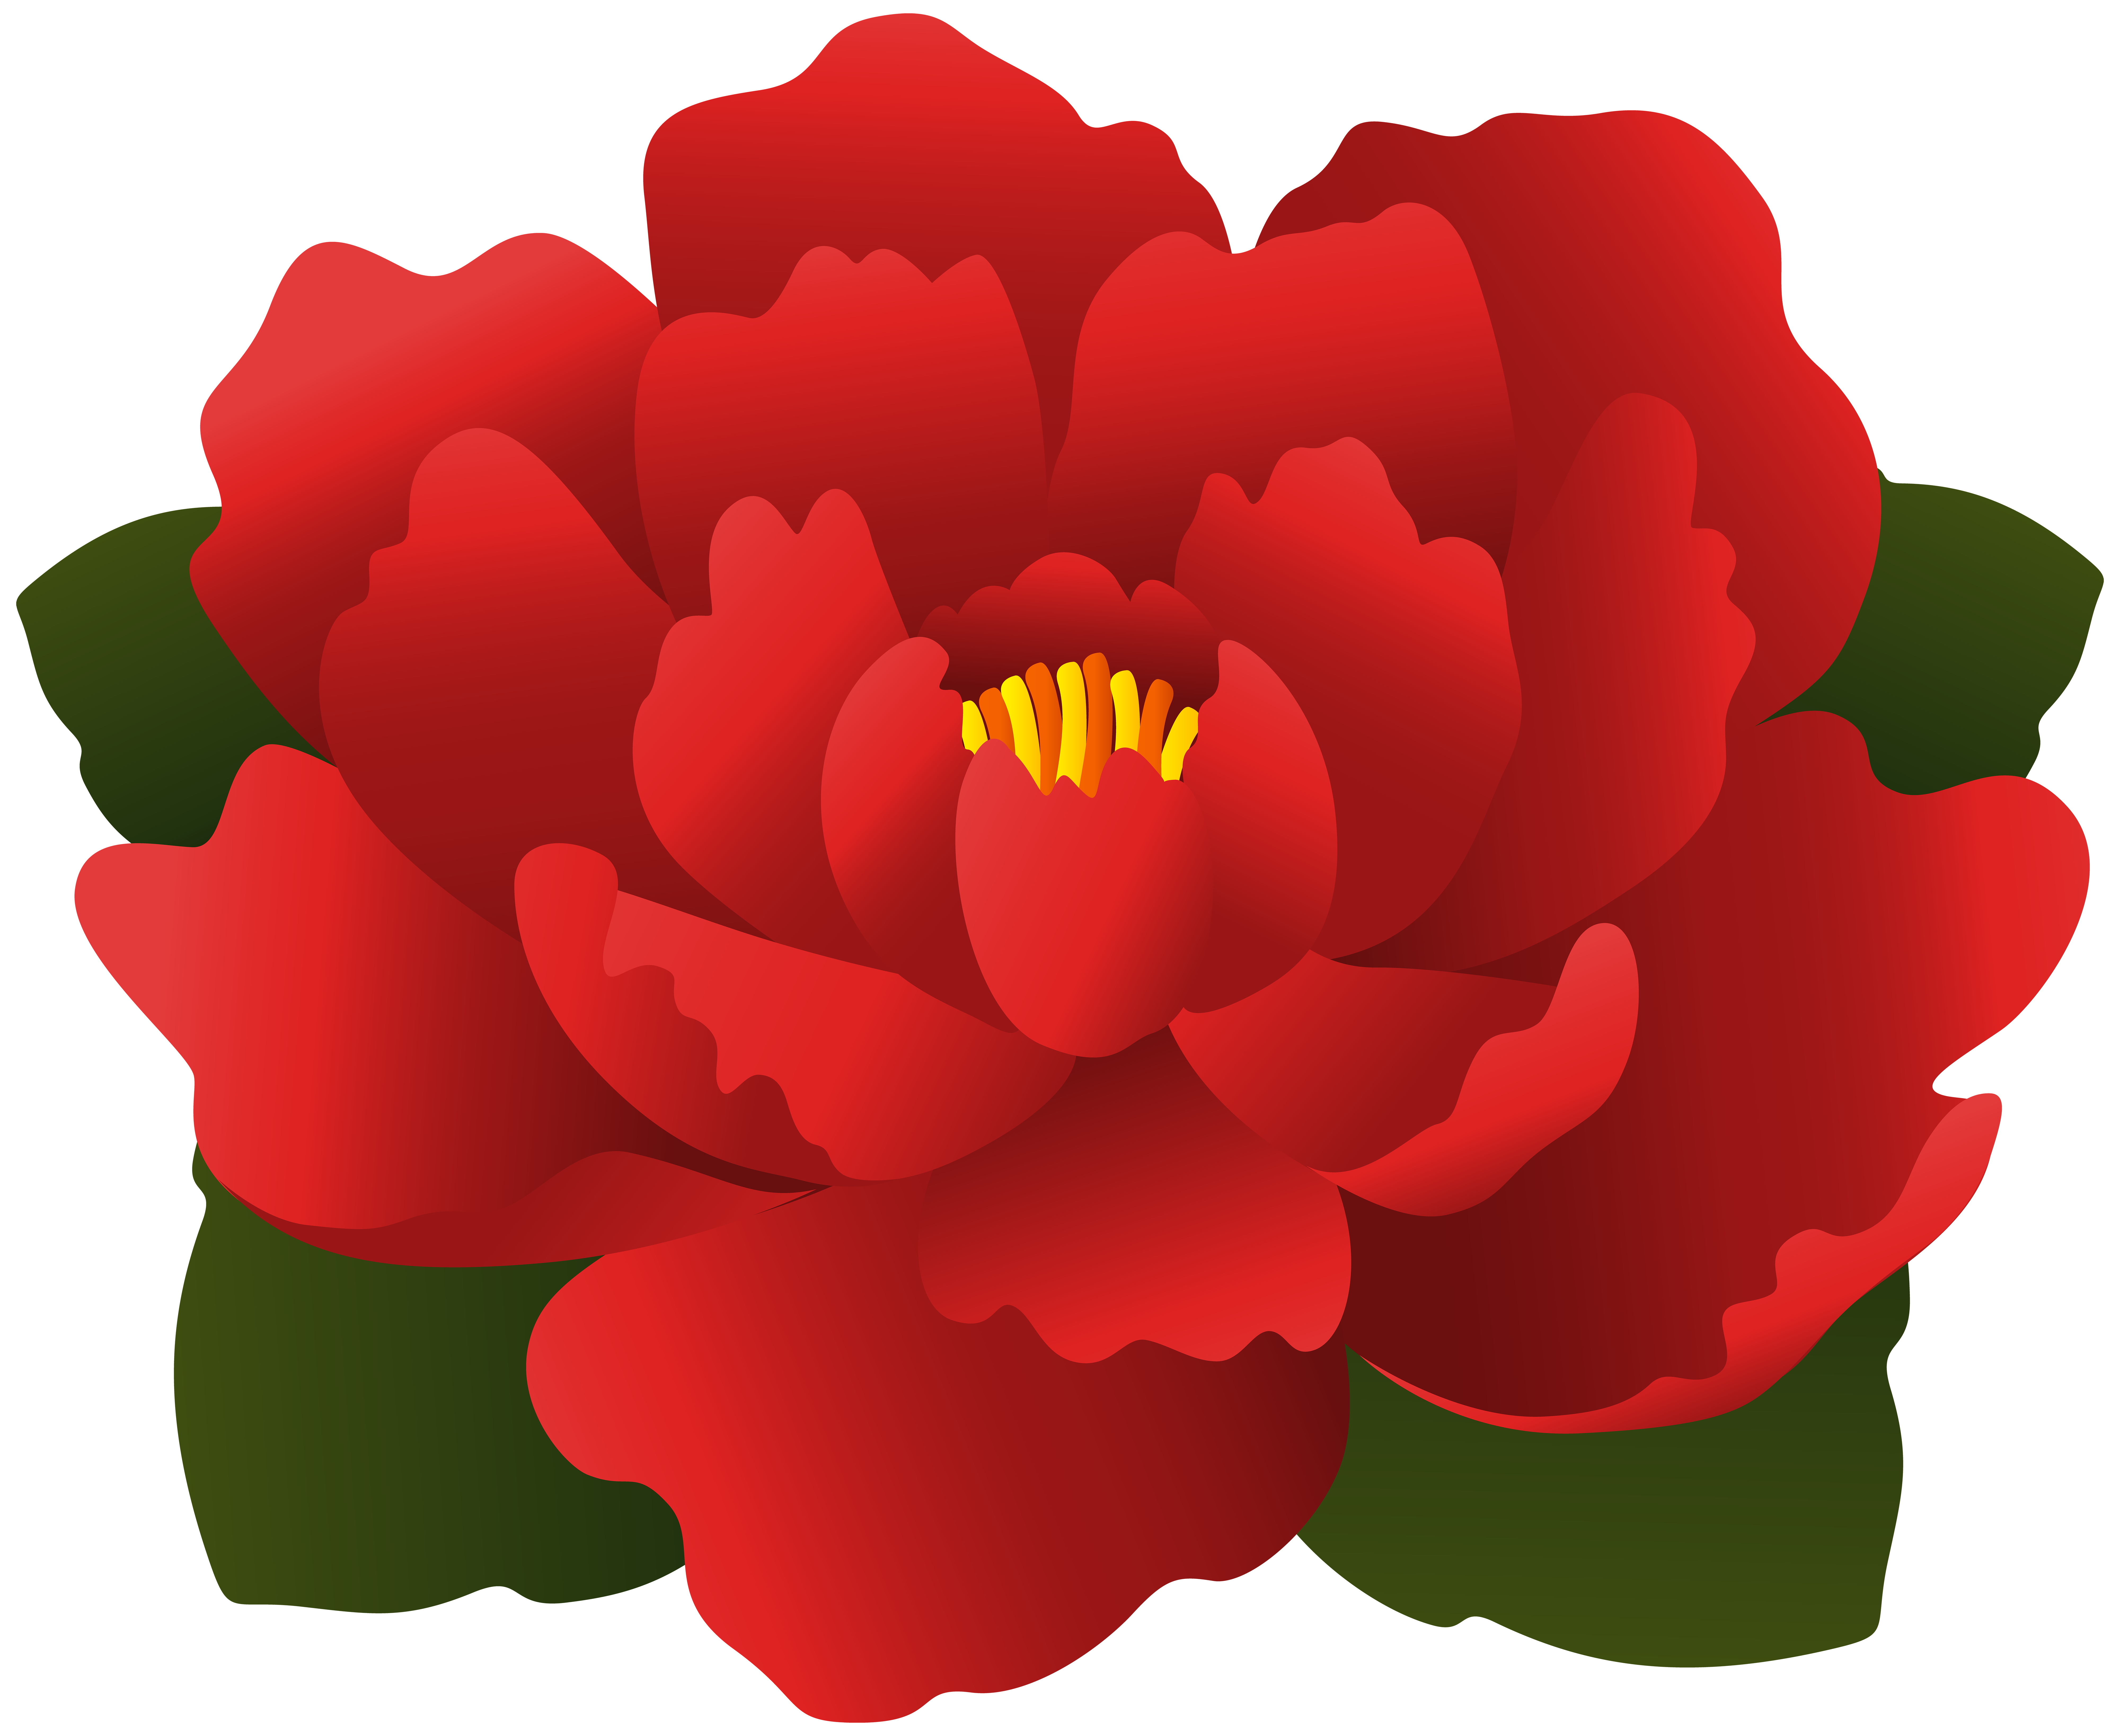 Red Flower Transparent Clip Art   Gallery Yopriceville - High ... graphic